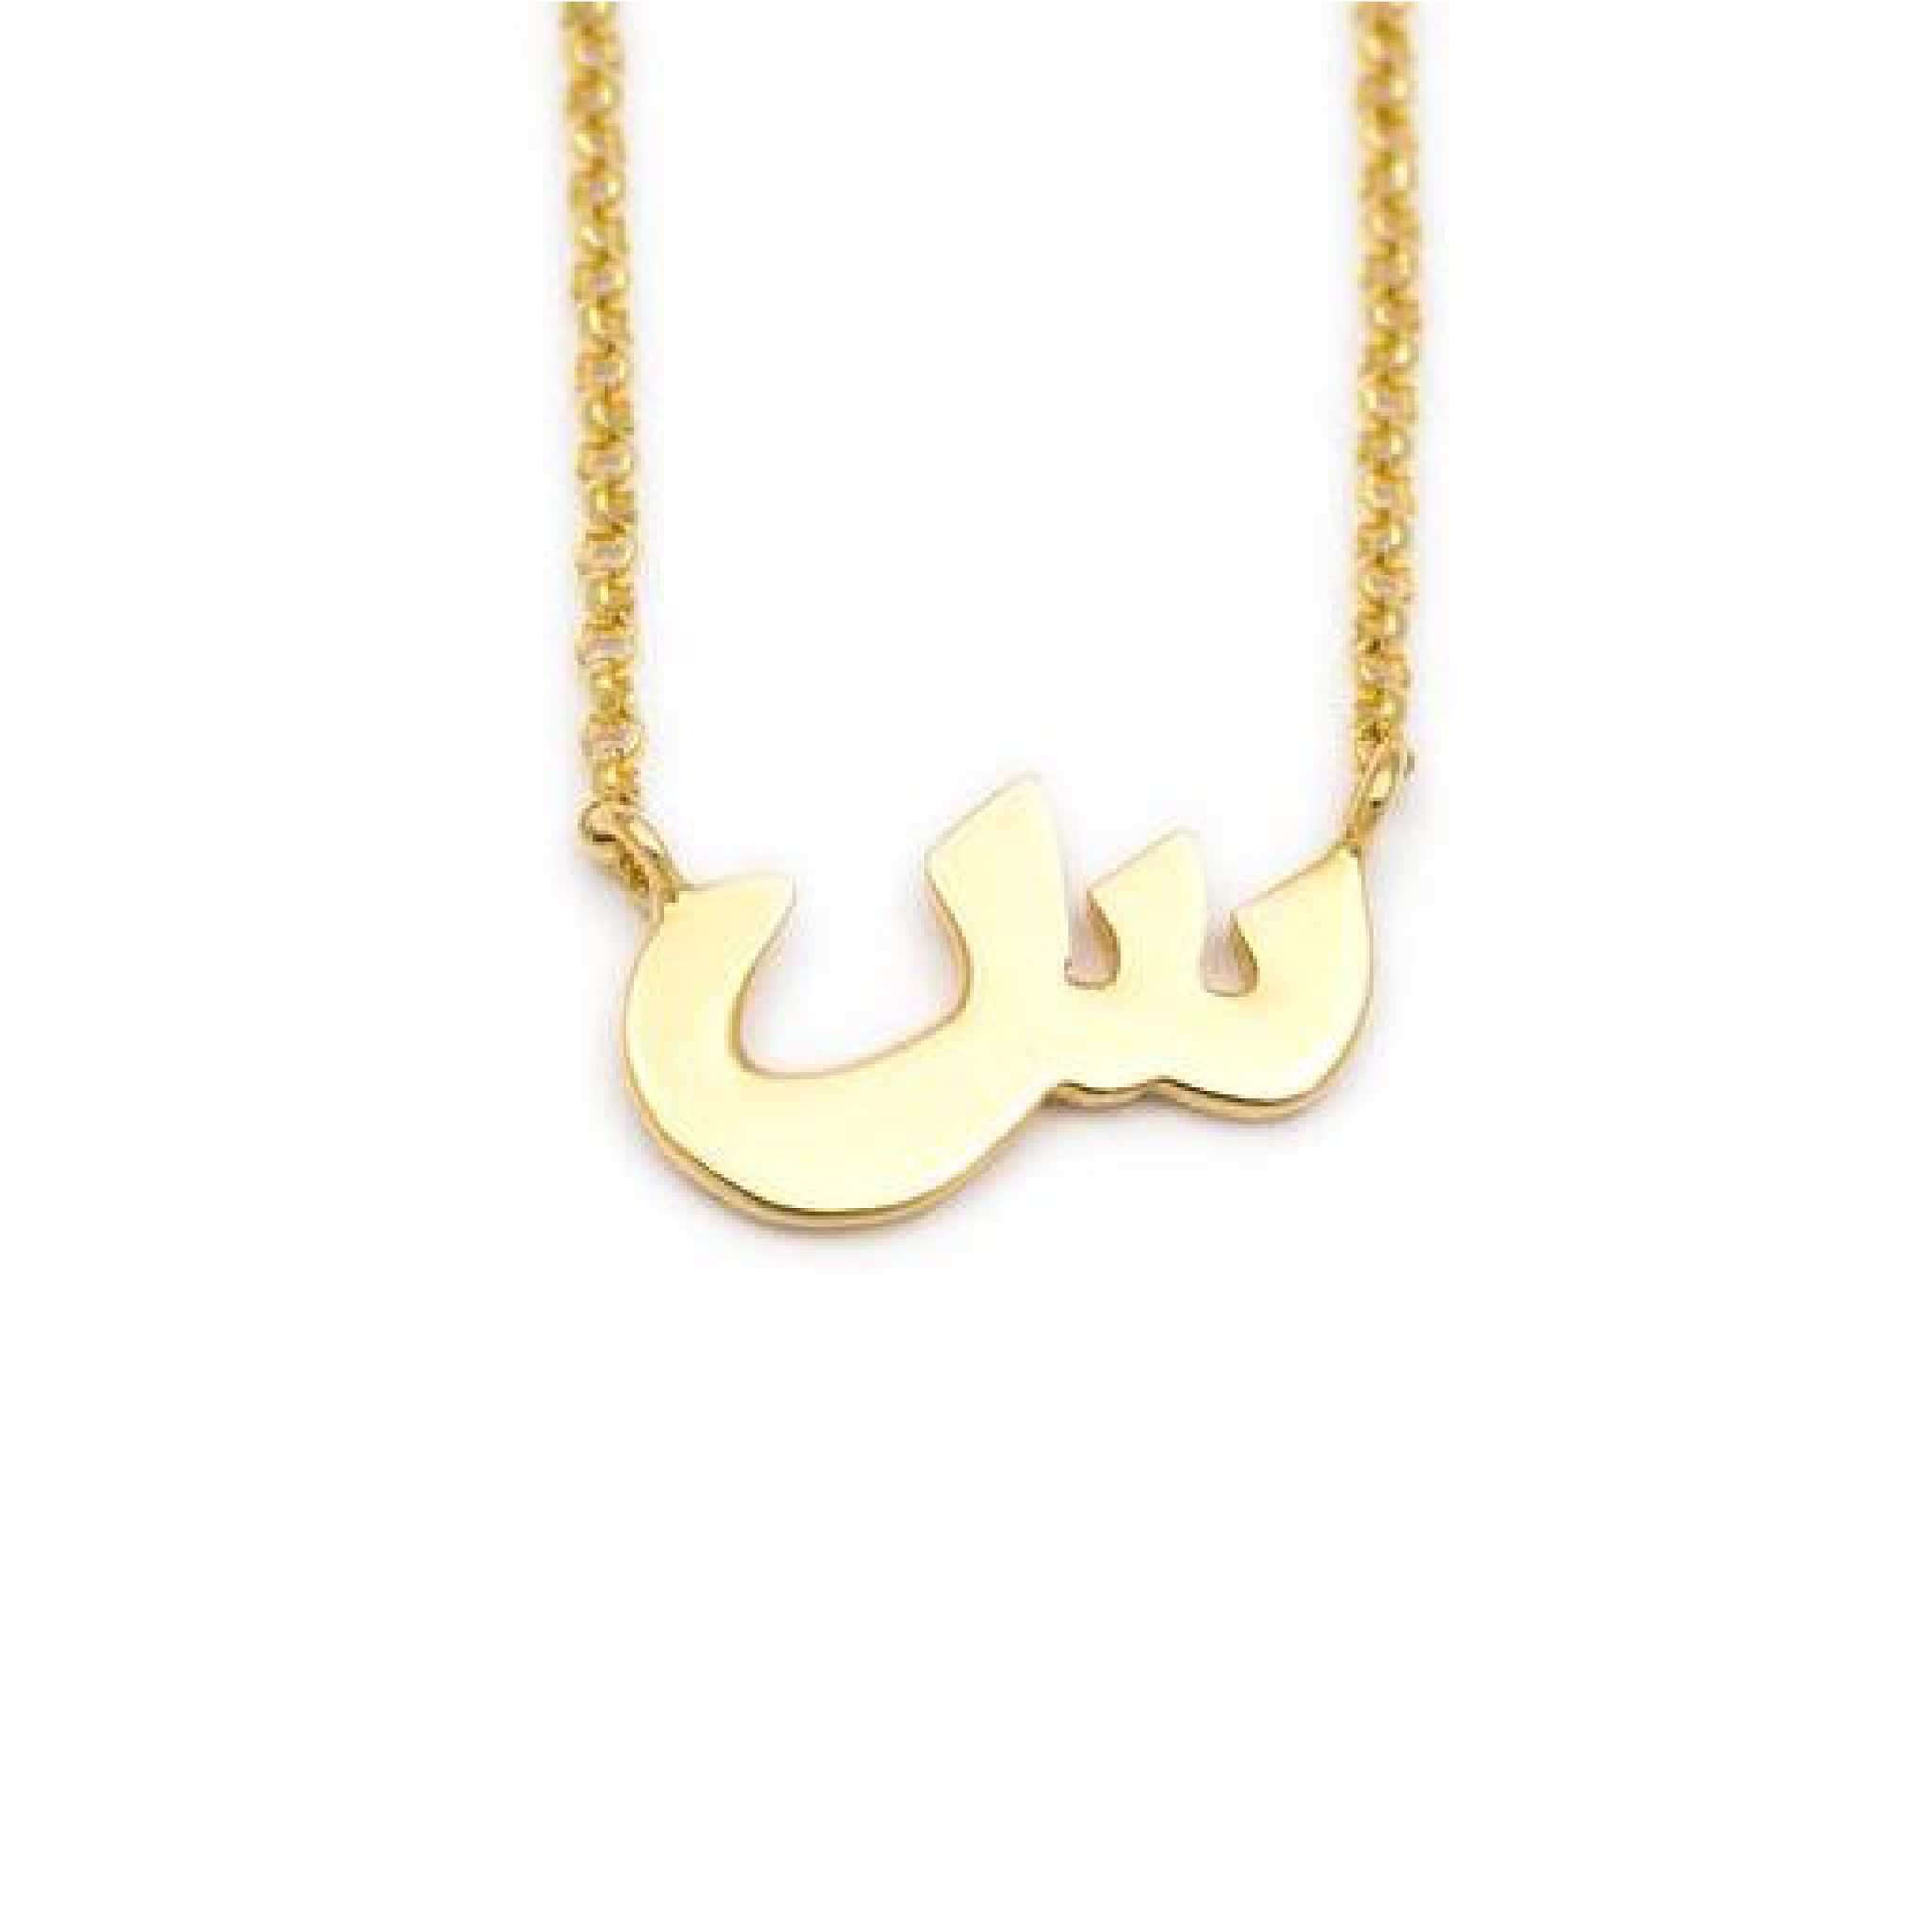 Bil Arabi 18k Letter Necklace